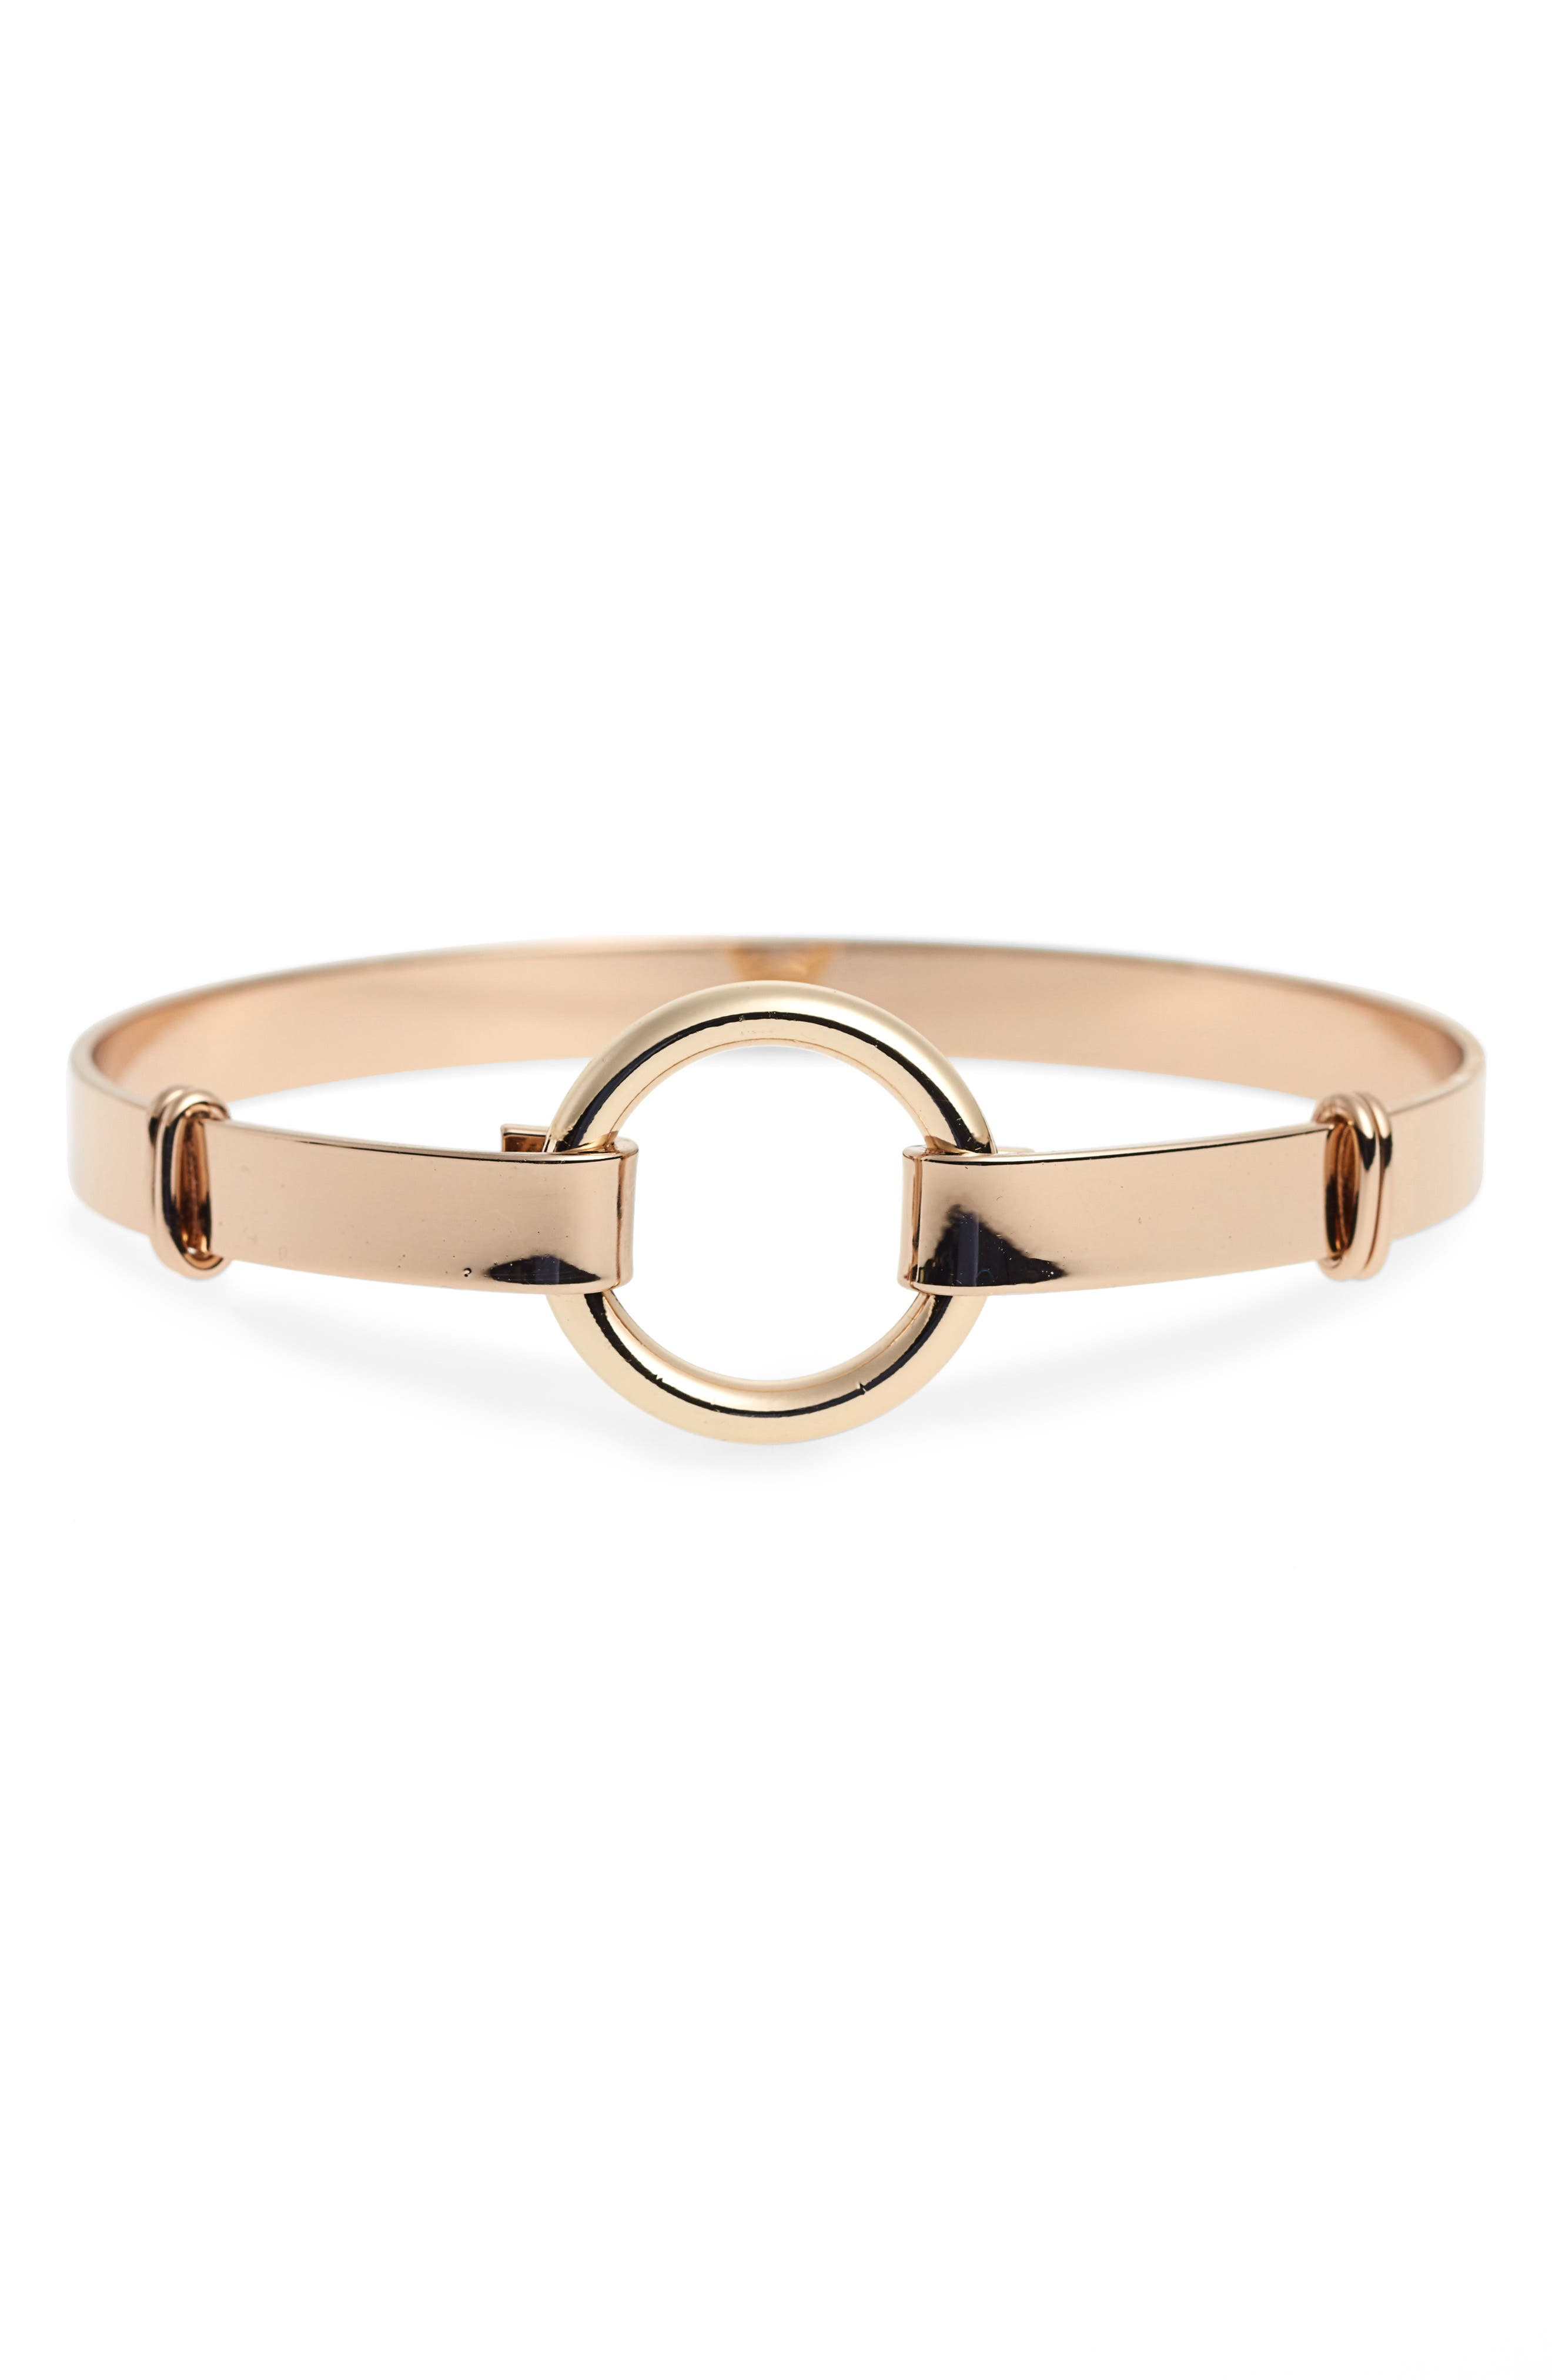 Open Circle Bangle,                             Main thumbnail 1, color,